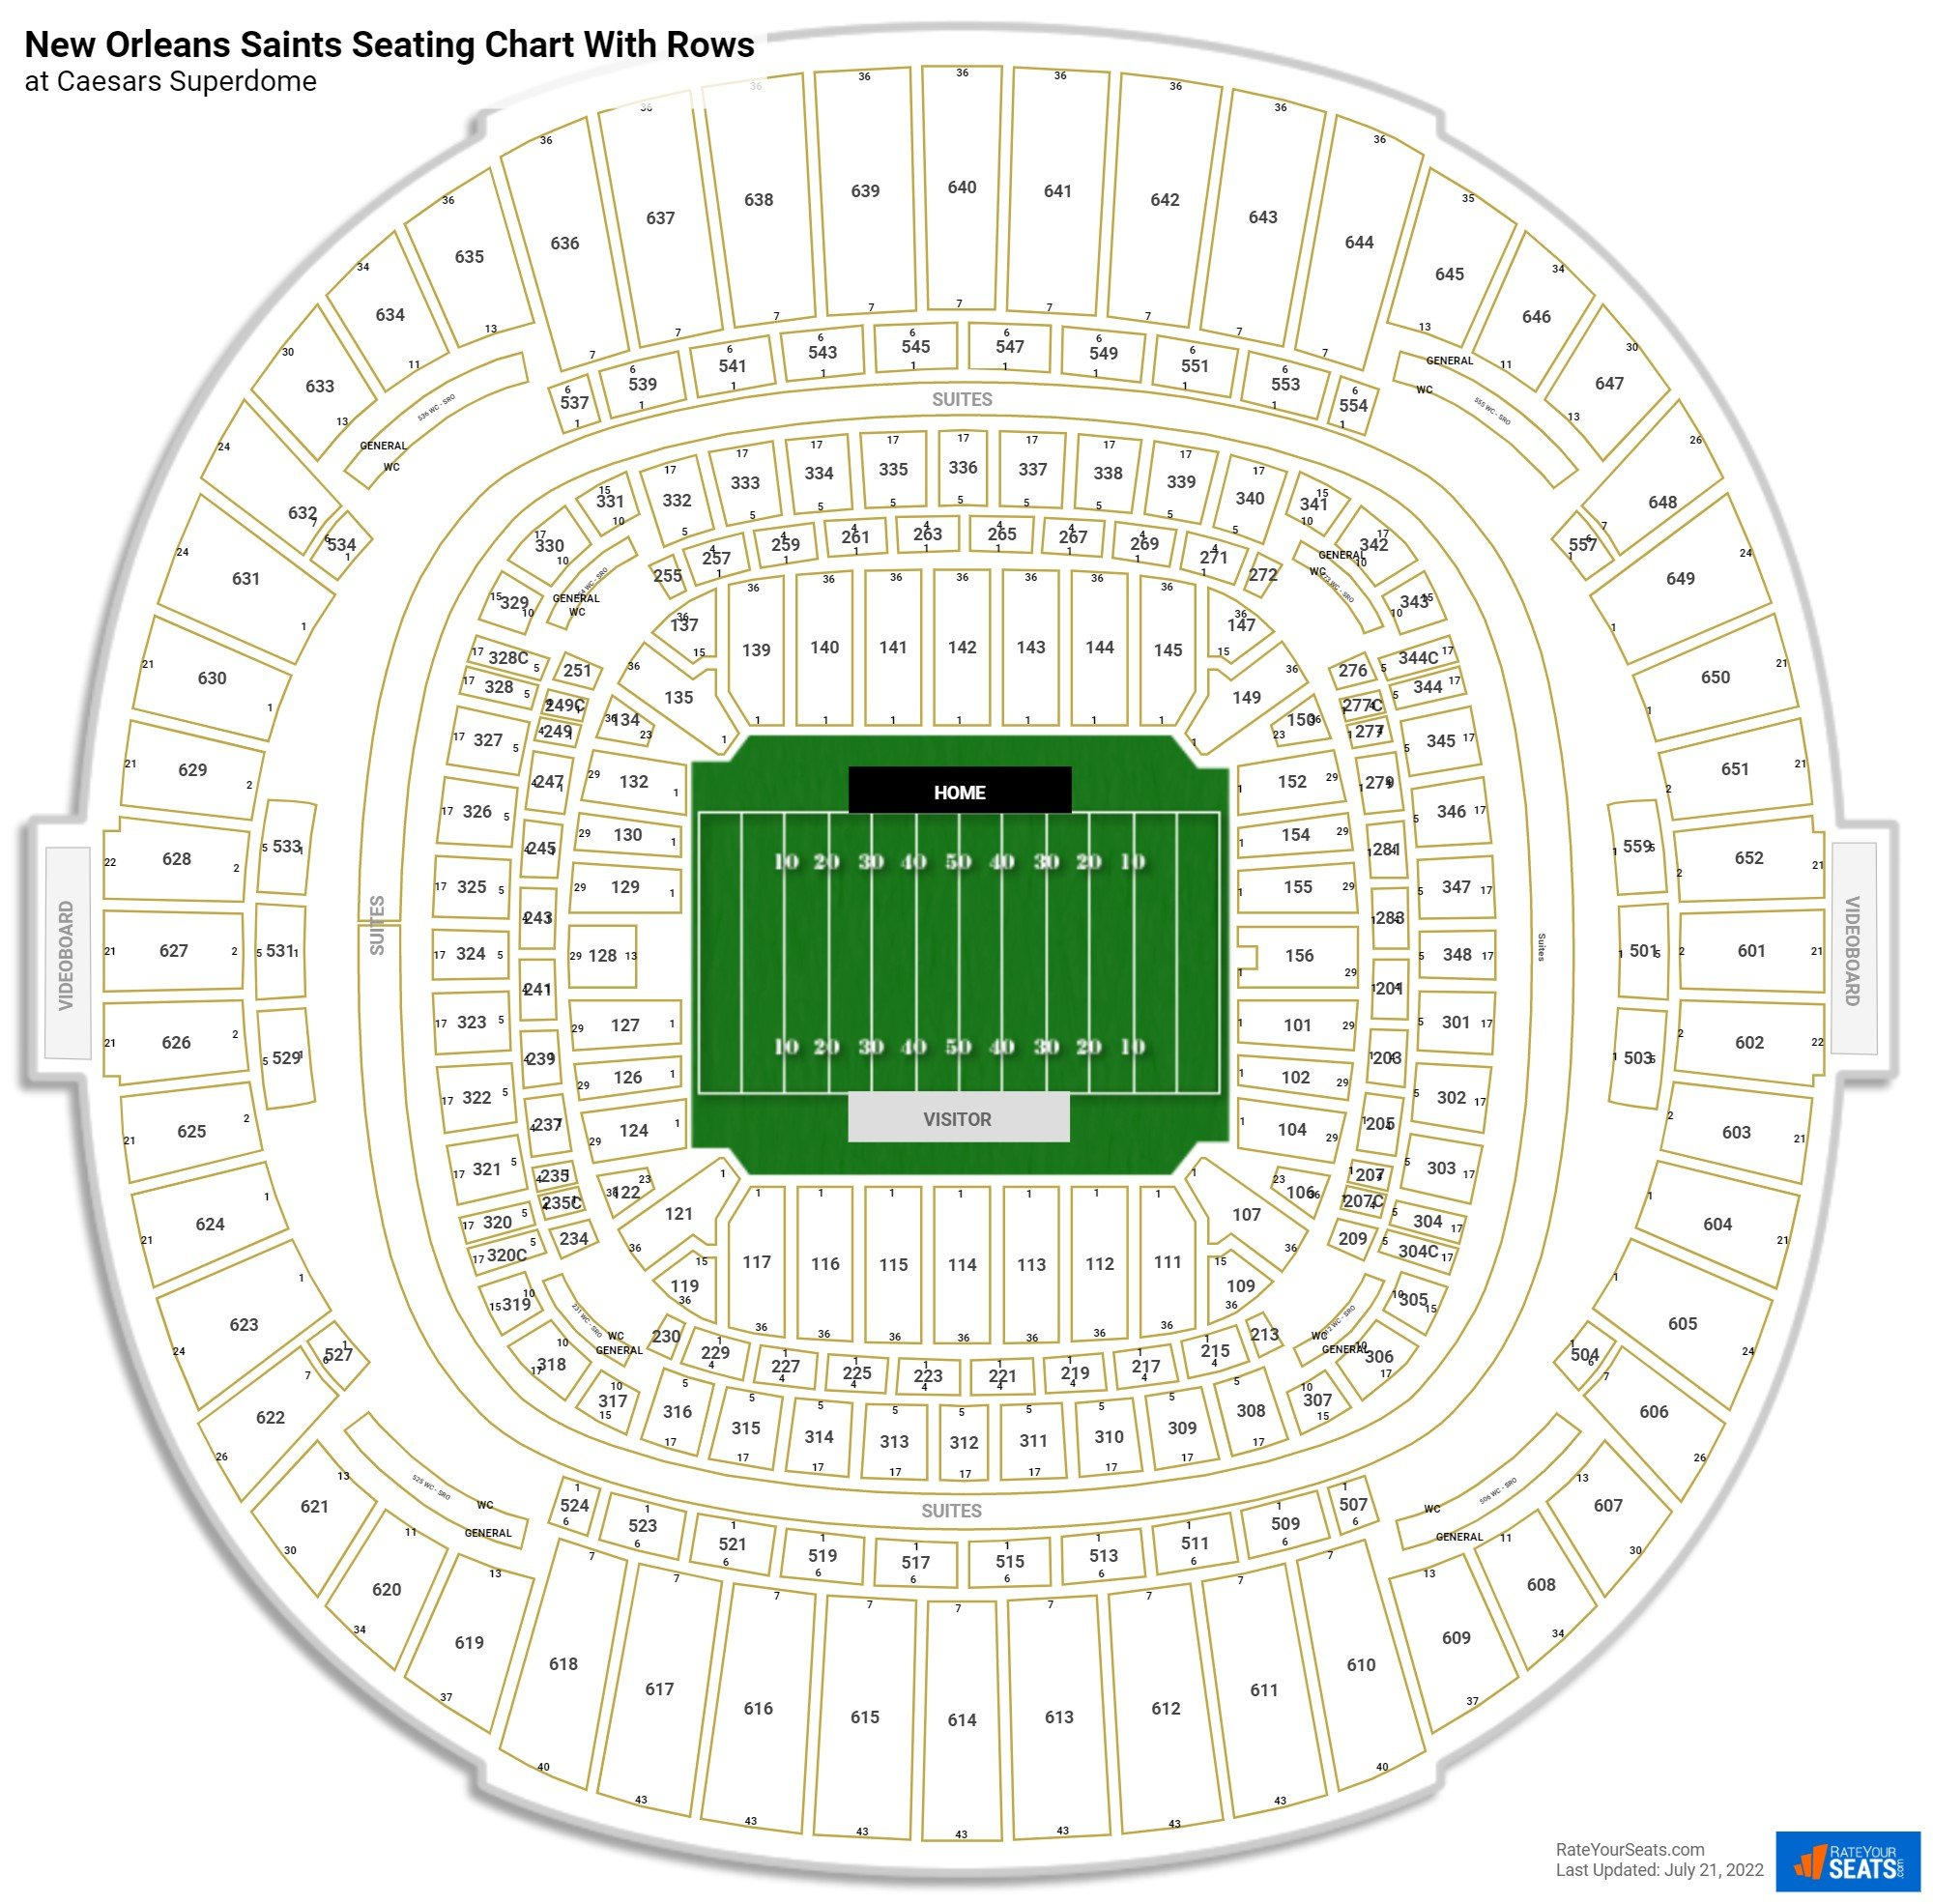 Superdome seating chart with rows football